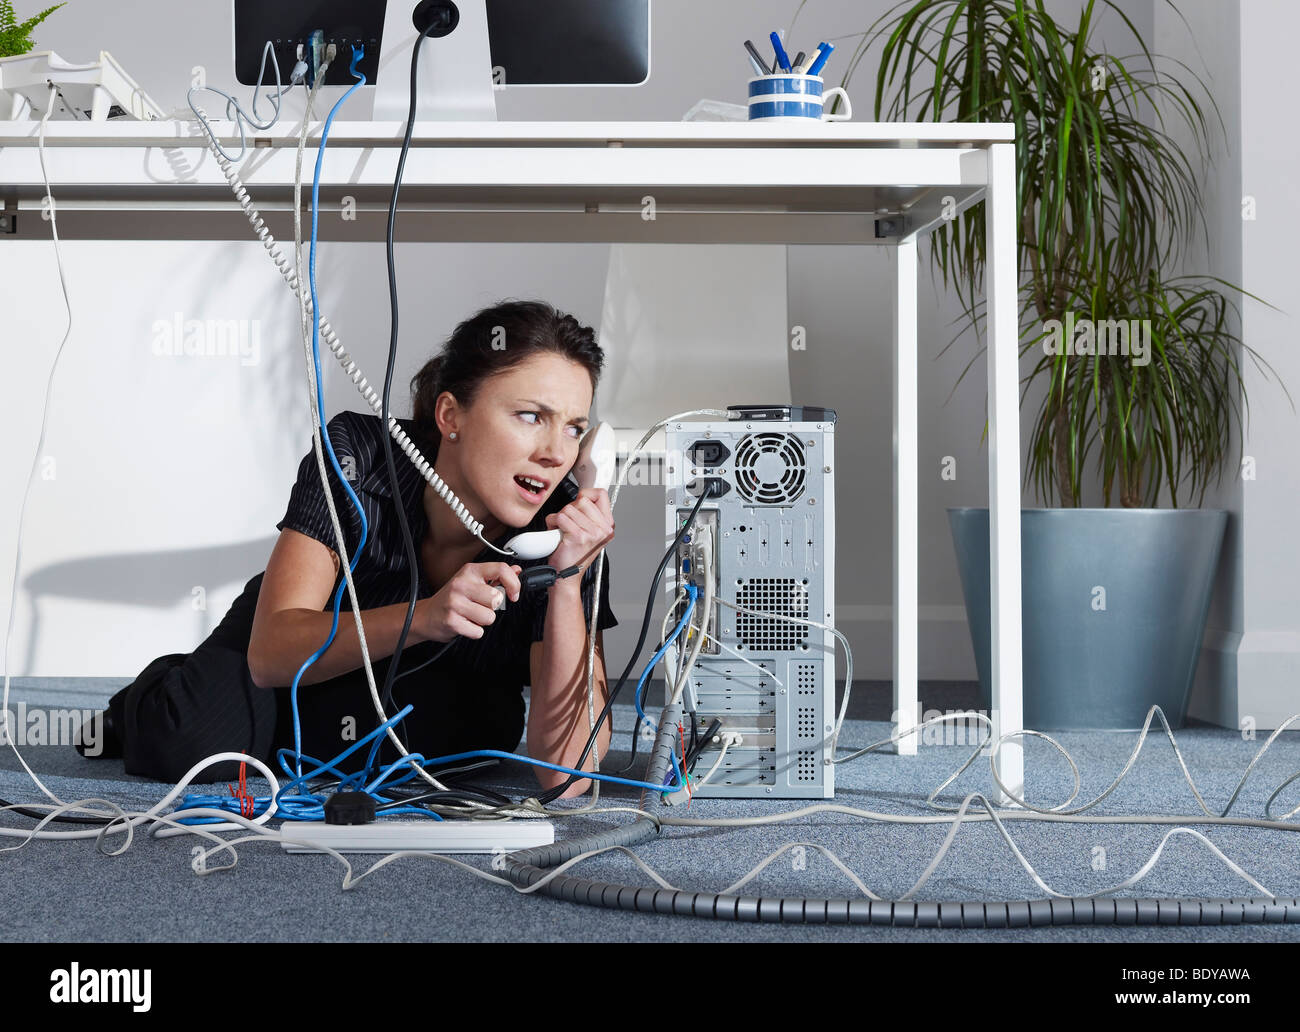 A female calling I.T support - Stock Image